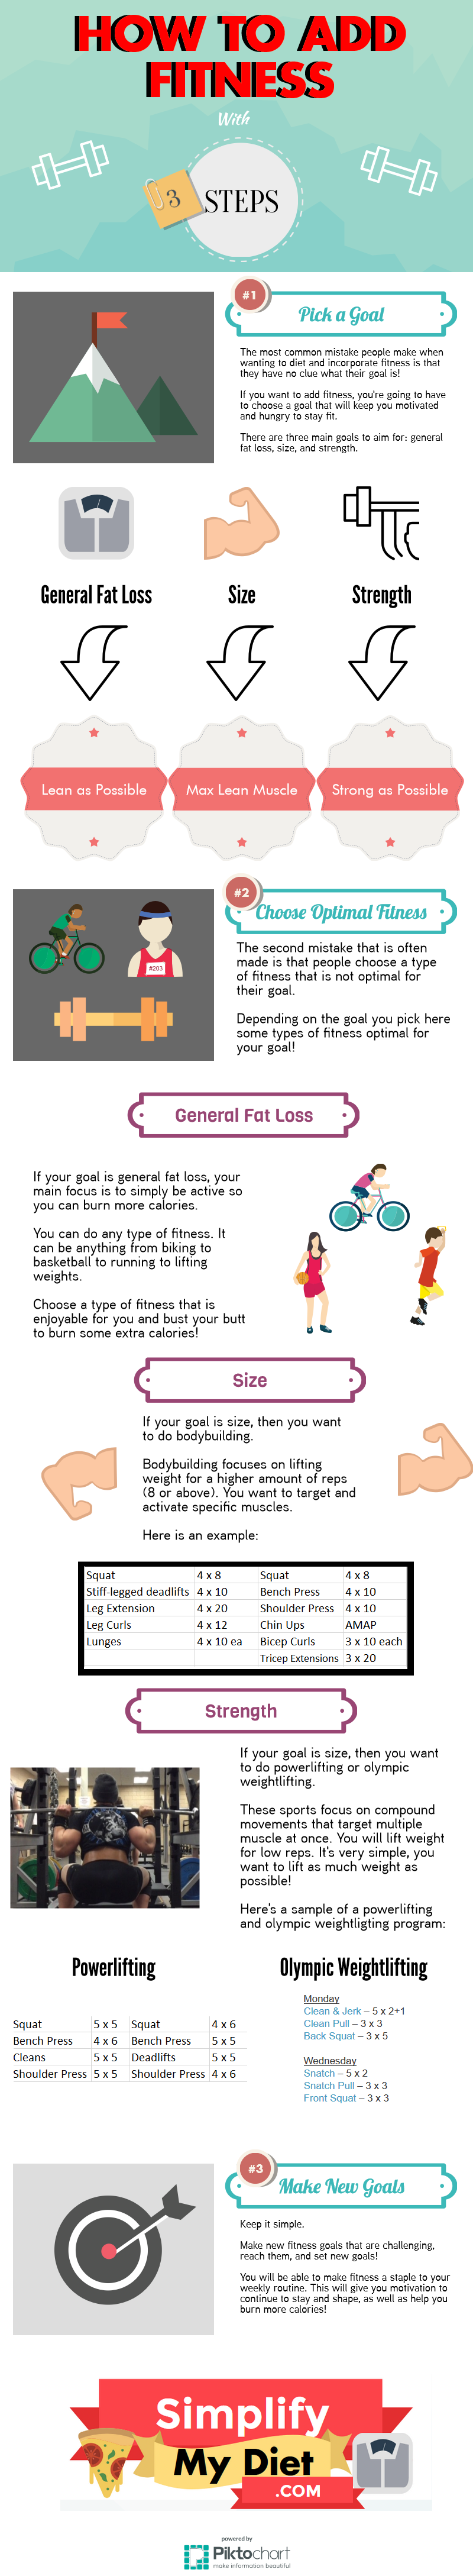 Keto diet plan for weight loss india image 6